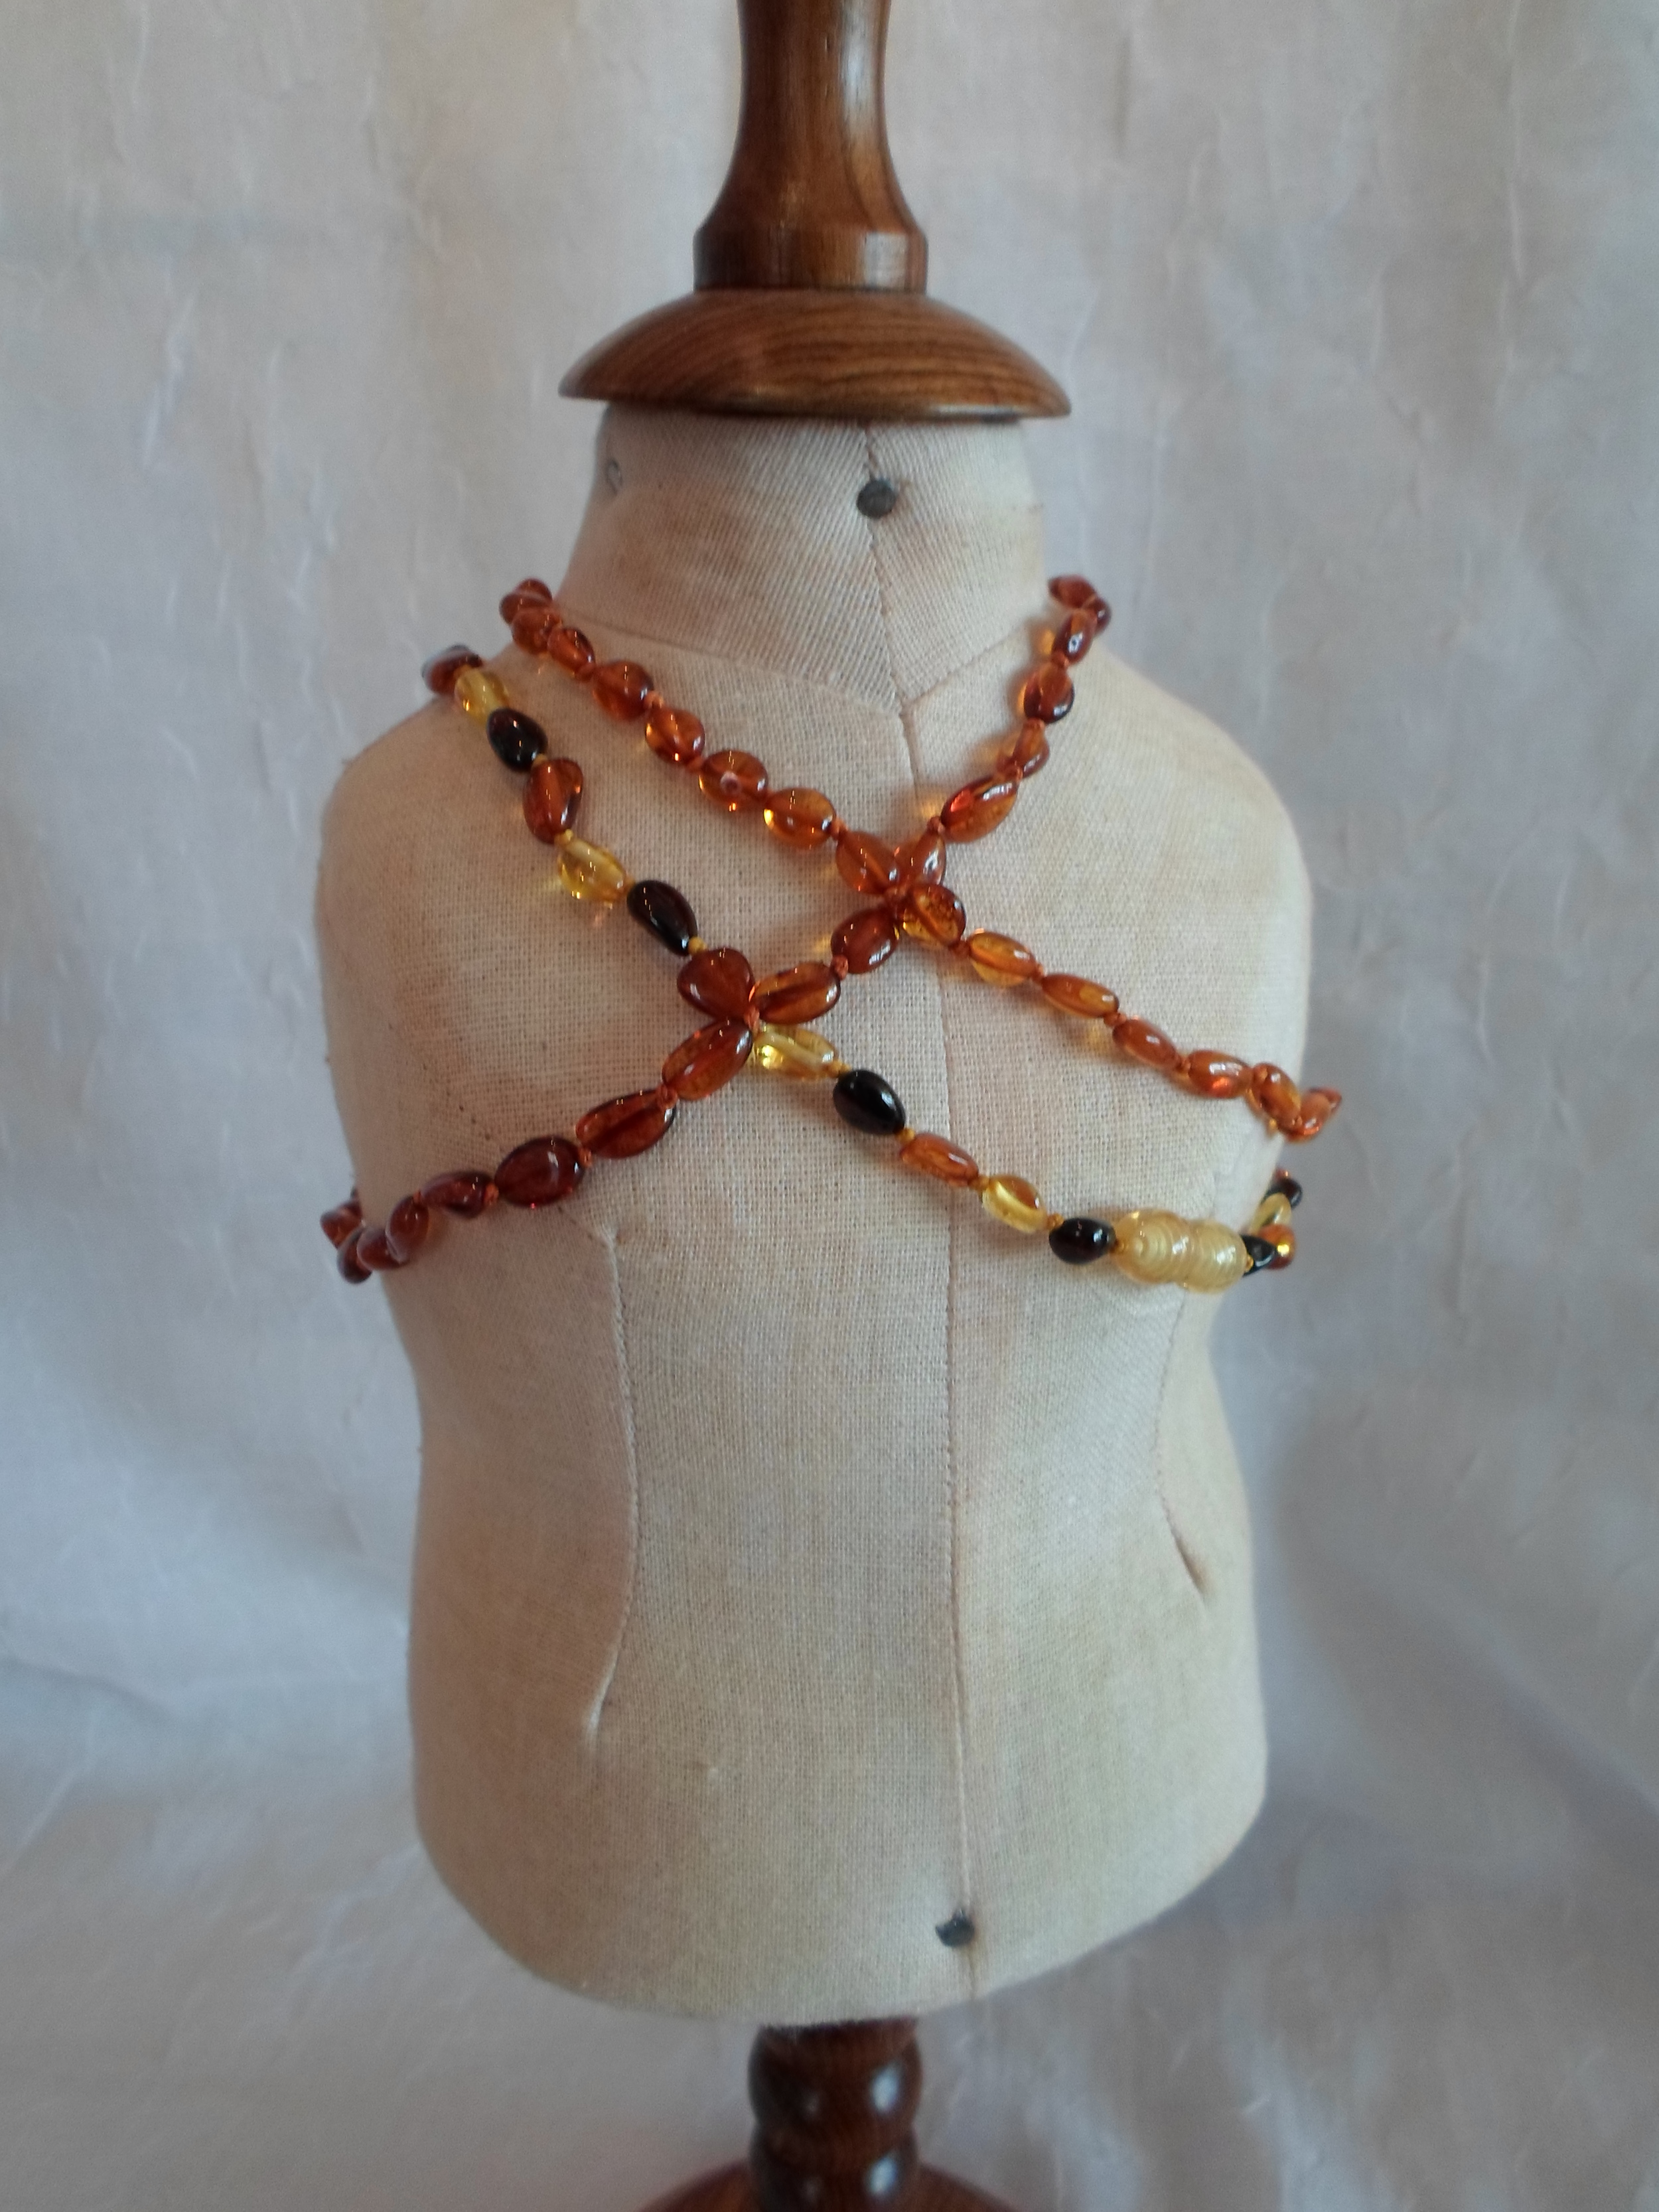 Amber Teething Necklace - $21    Purchased